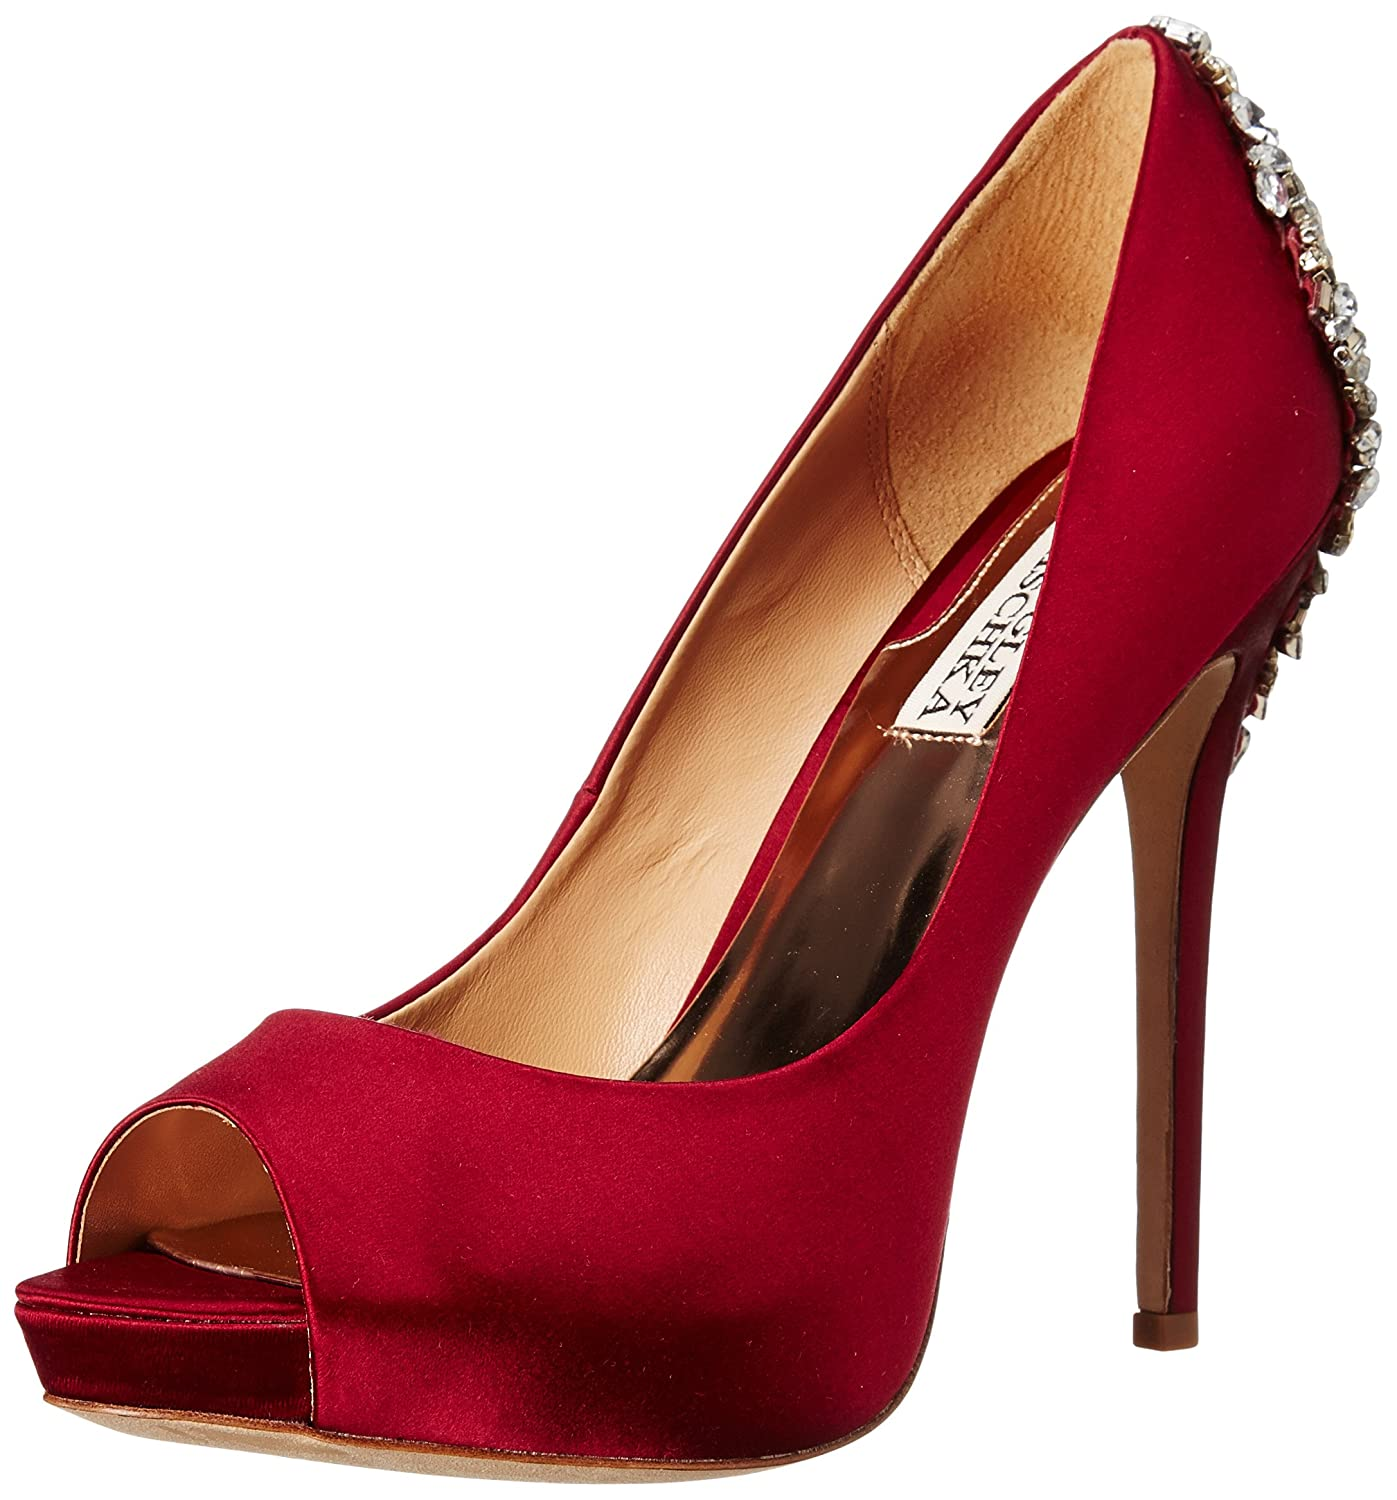 Badgley Mischka Women's Kiara Platform Pump B005BEYDX0 7.5 B(M) US|Red